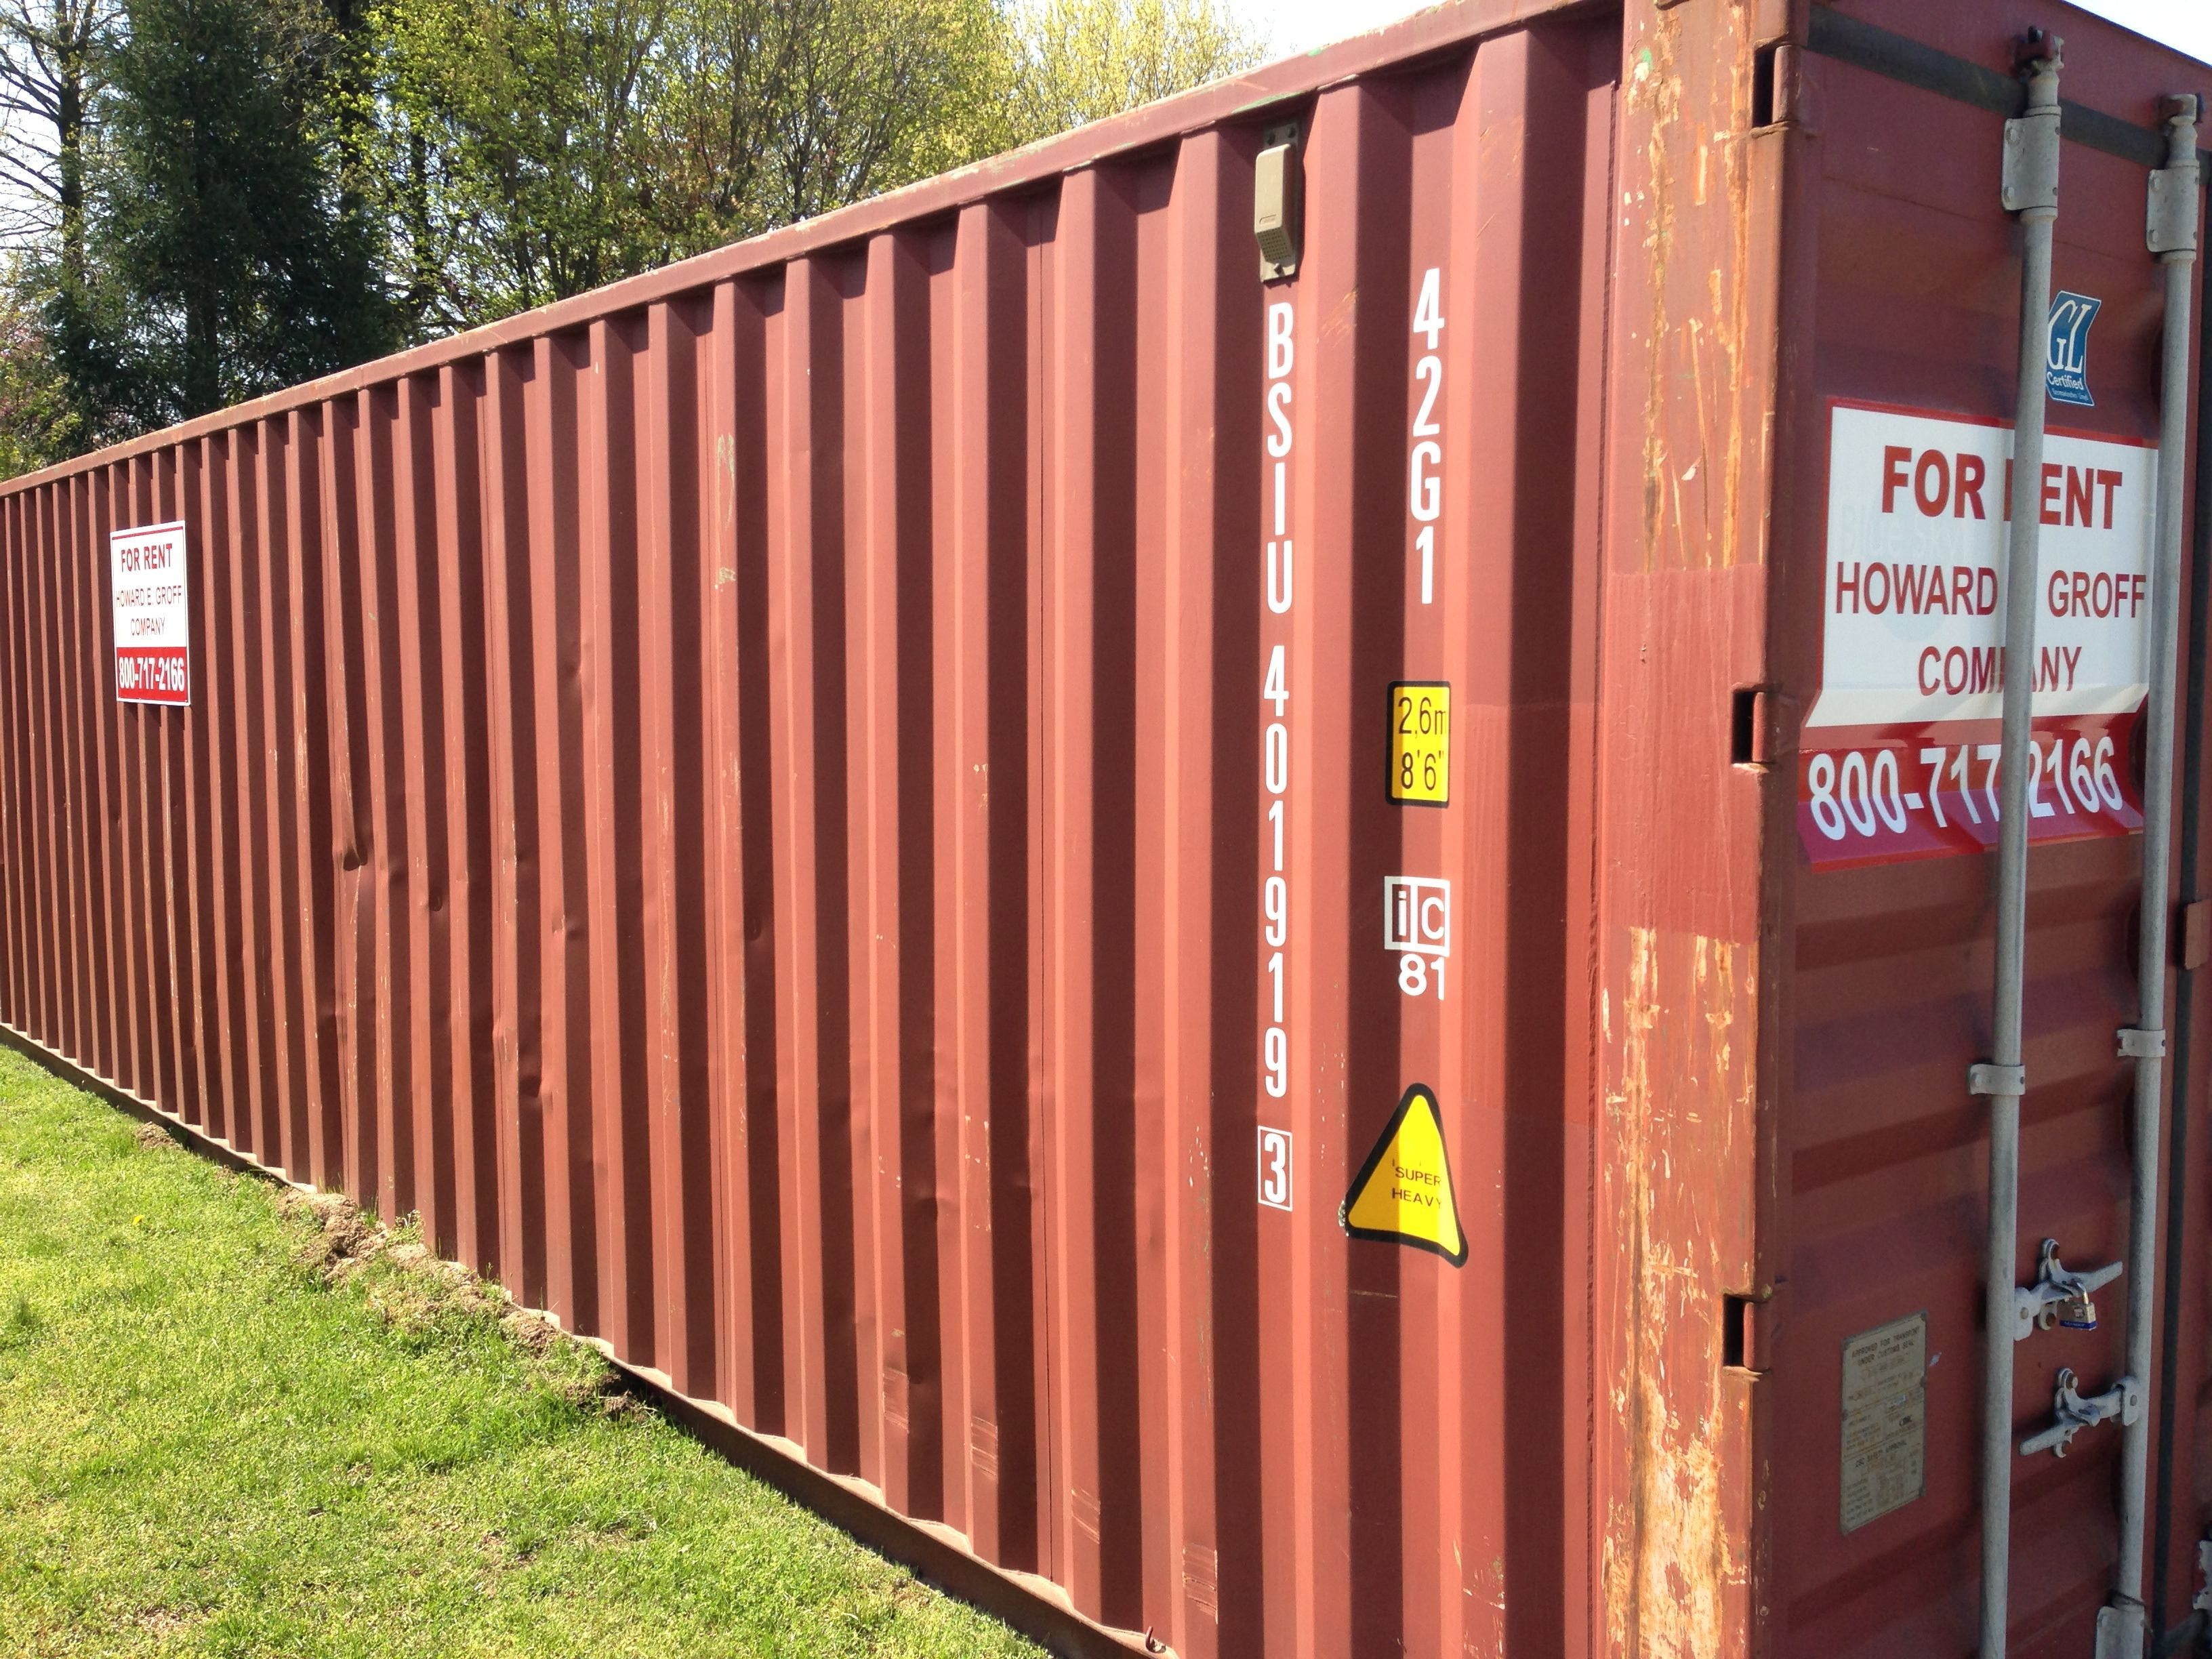 Nice Bsiu Container Being Used For Storage In Lancaster, Pa